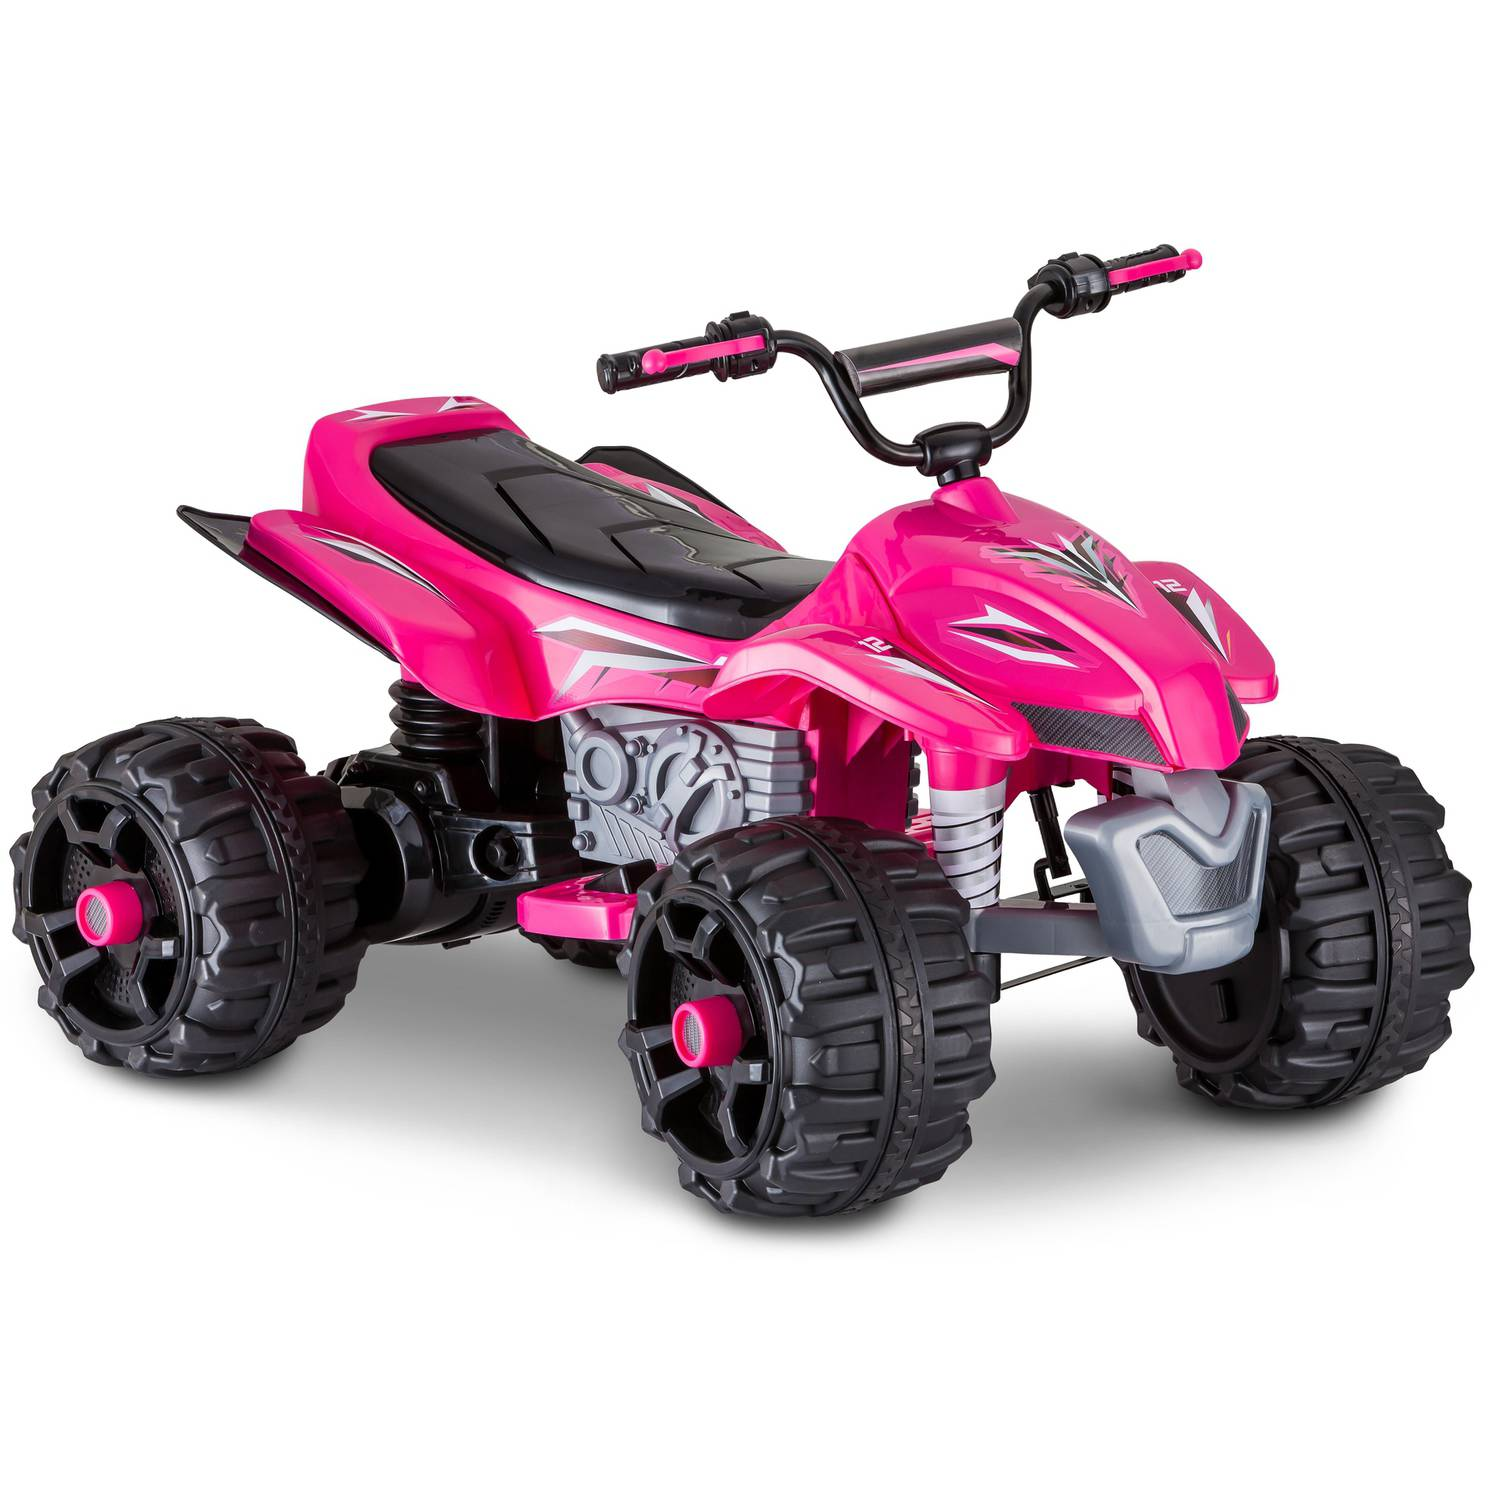 Sport ATV 12V Battery Powered Ride-On, Multiple Colors